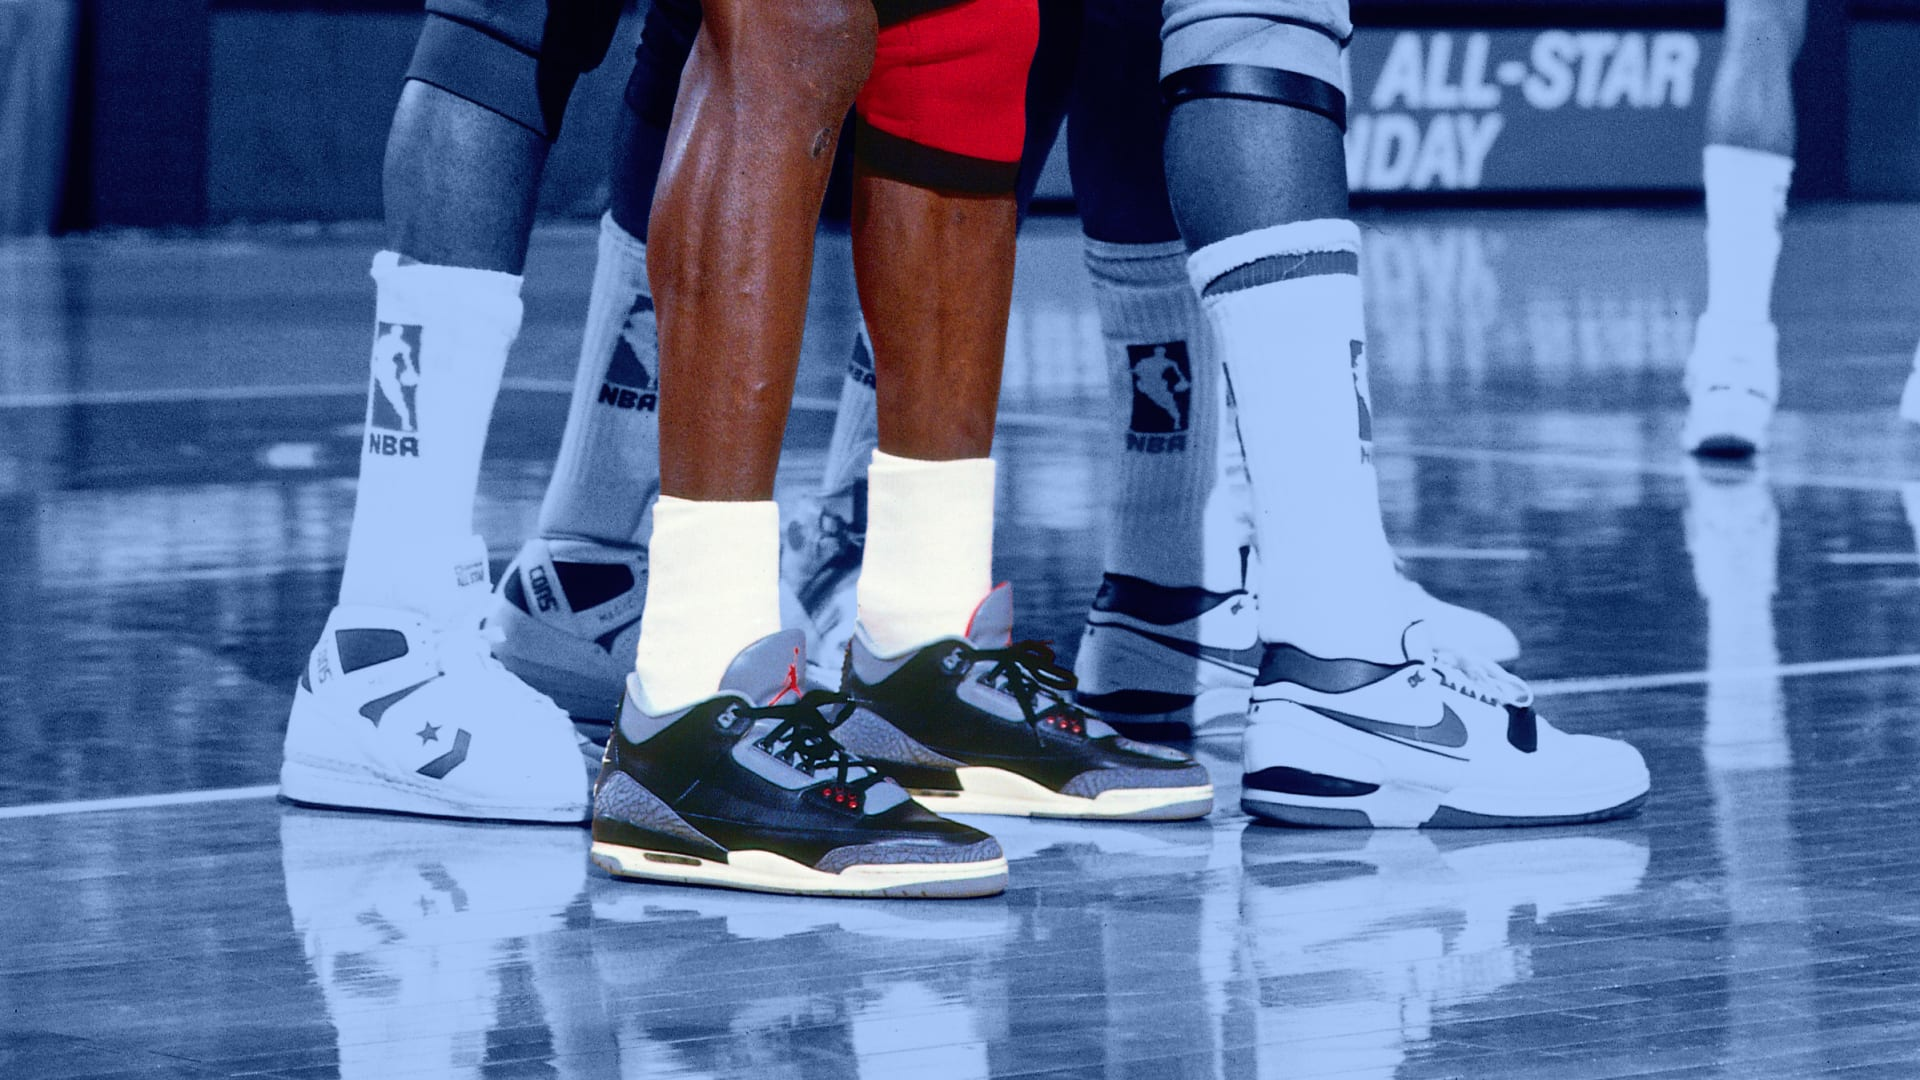 ab59c7fe55bd 6 Times Sneakers Stole the Show at the NBA All-Star Game